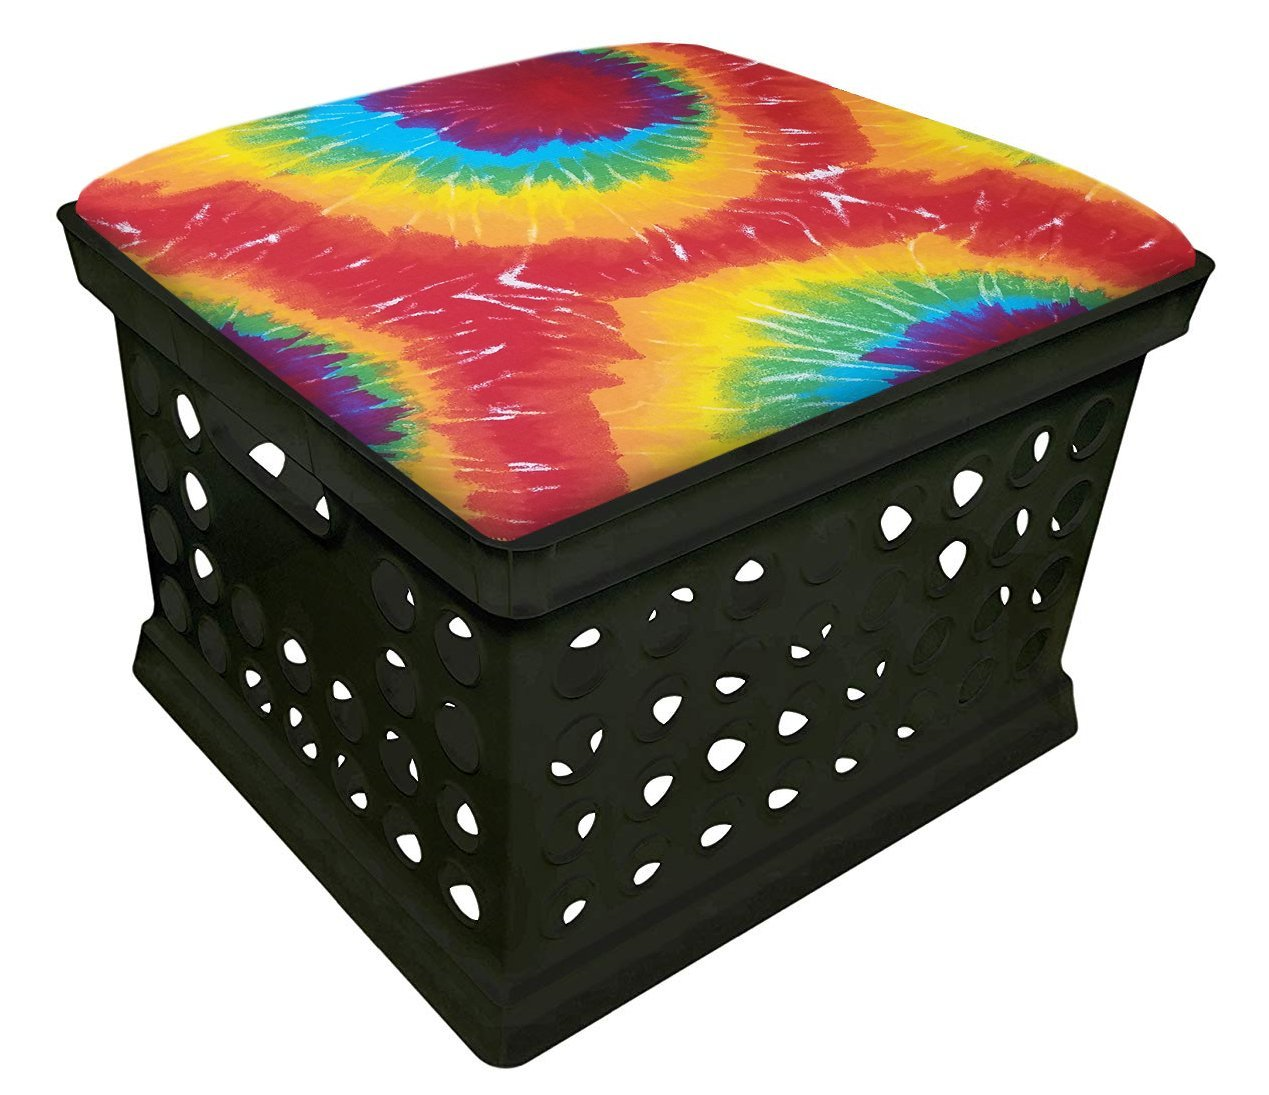 Black Utility Crate Storage Container Ottoman Bench Stool for Office/Home/School/Preschools with Your Choice of Seat Cushion Theme and a Free Flashlight! (Tie Dye Large Print) by The Furniture Cove